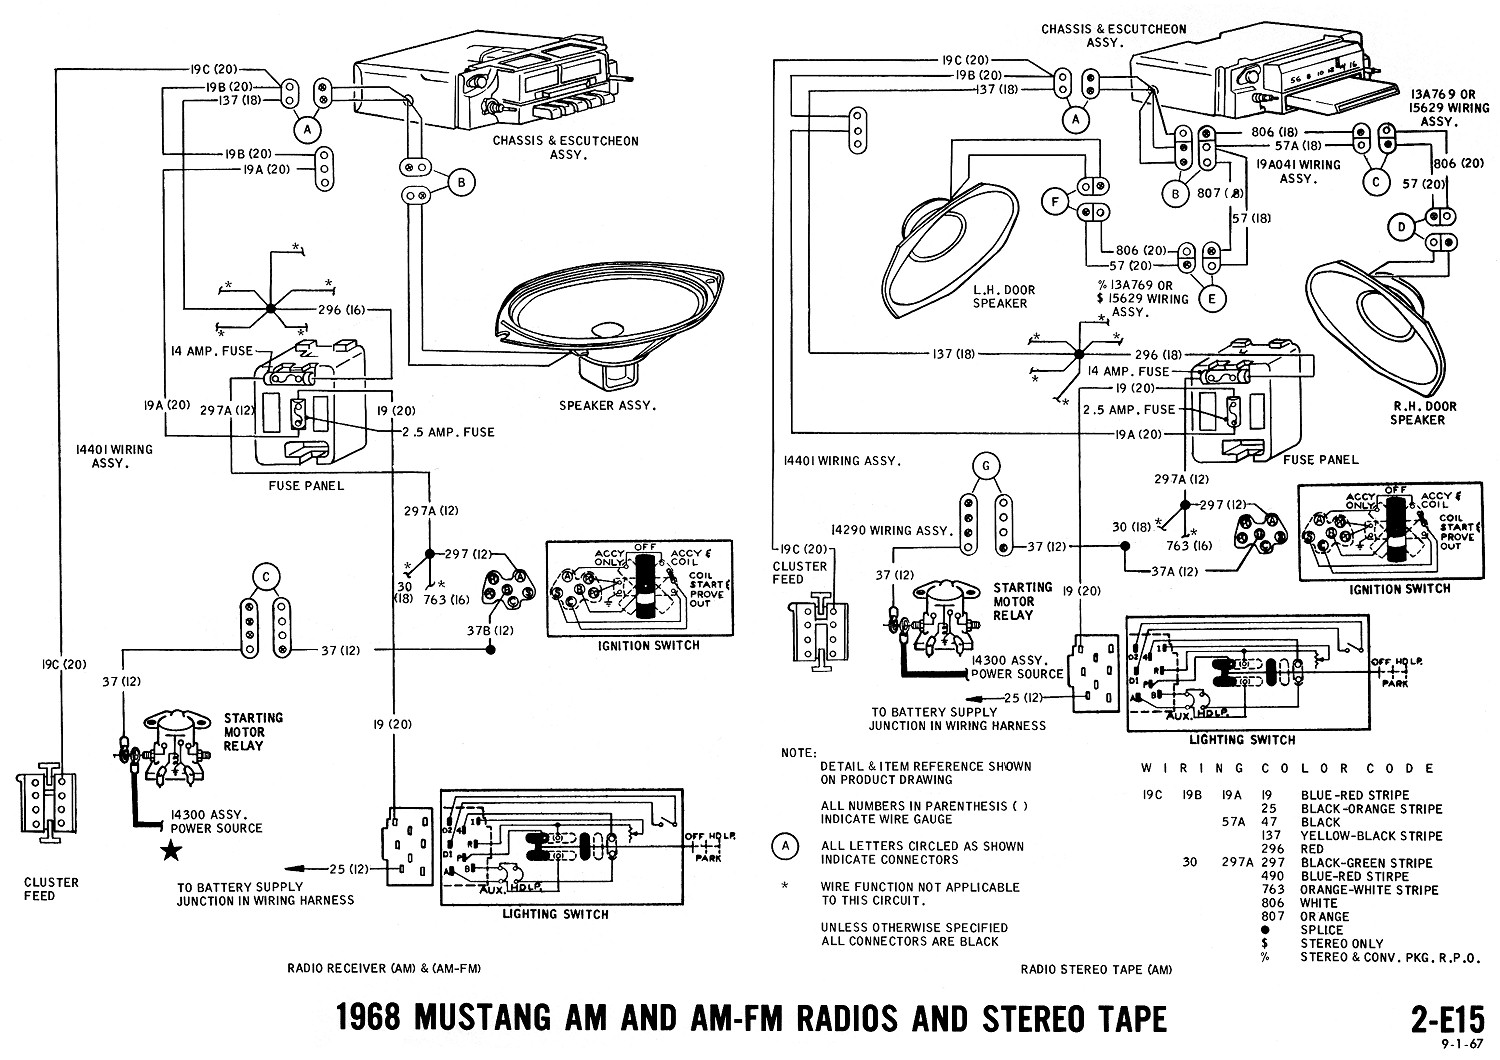 Porsche Speakers Wiring Diagram Will Be A Thing Stereo 1968 Mustang Diagrams Evolving Software 356 Schematics